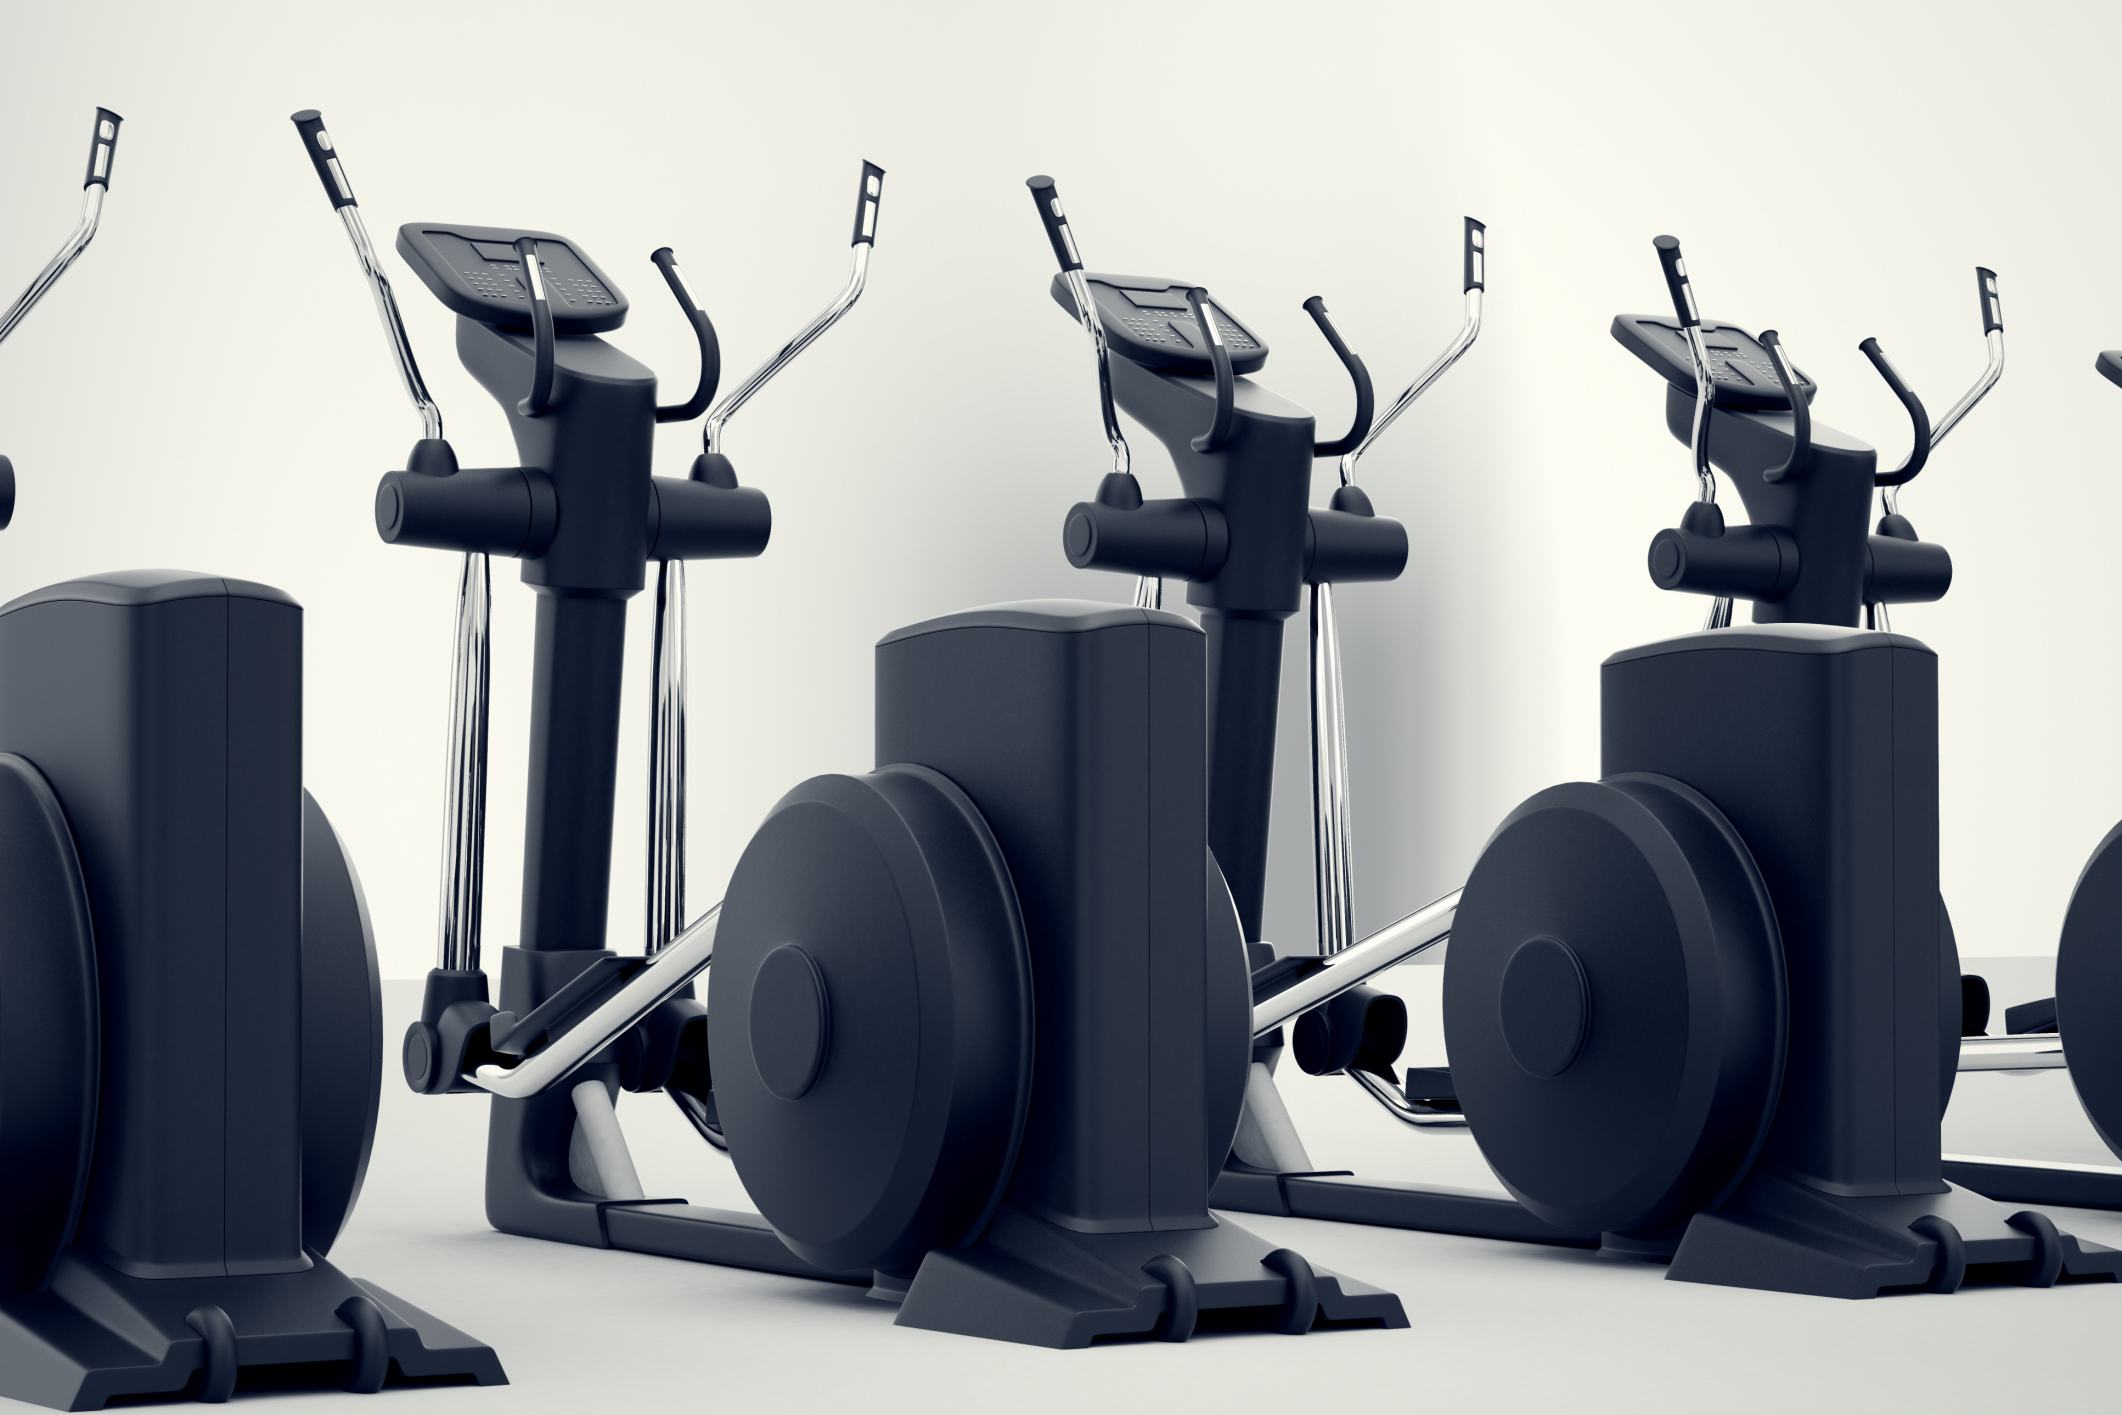 Most Popular Pieces Of Exercise Equipment Who knew the elliptical could be so hardcore? https www sportsrec com 373299 most popular pieces of exercise equipment html